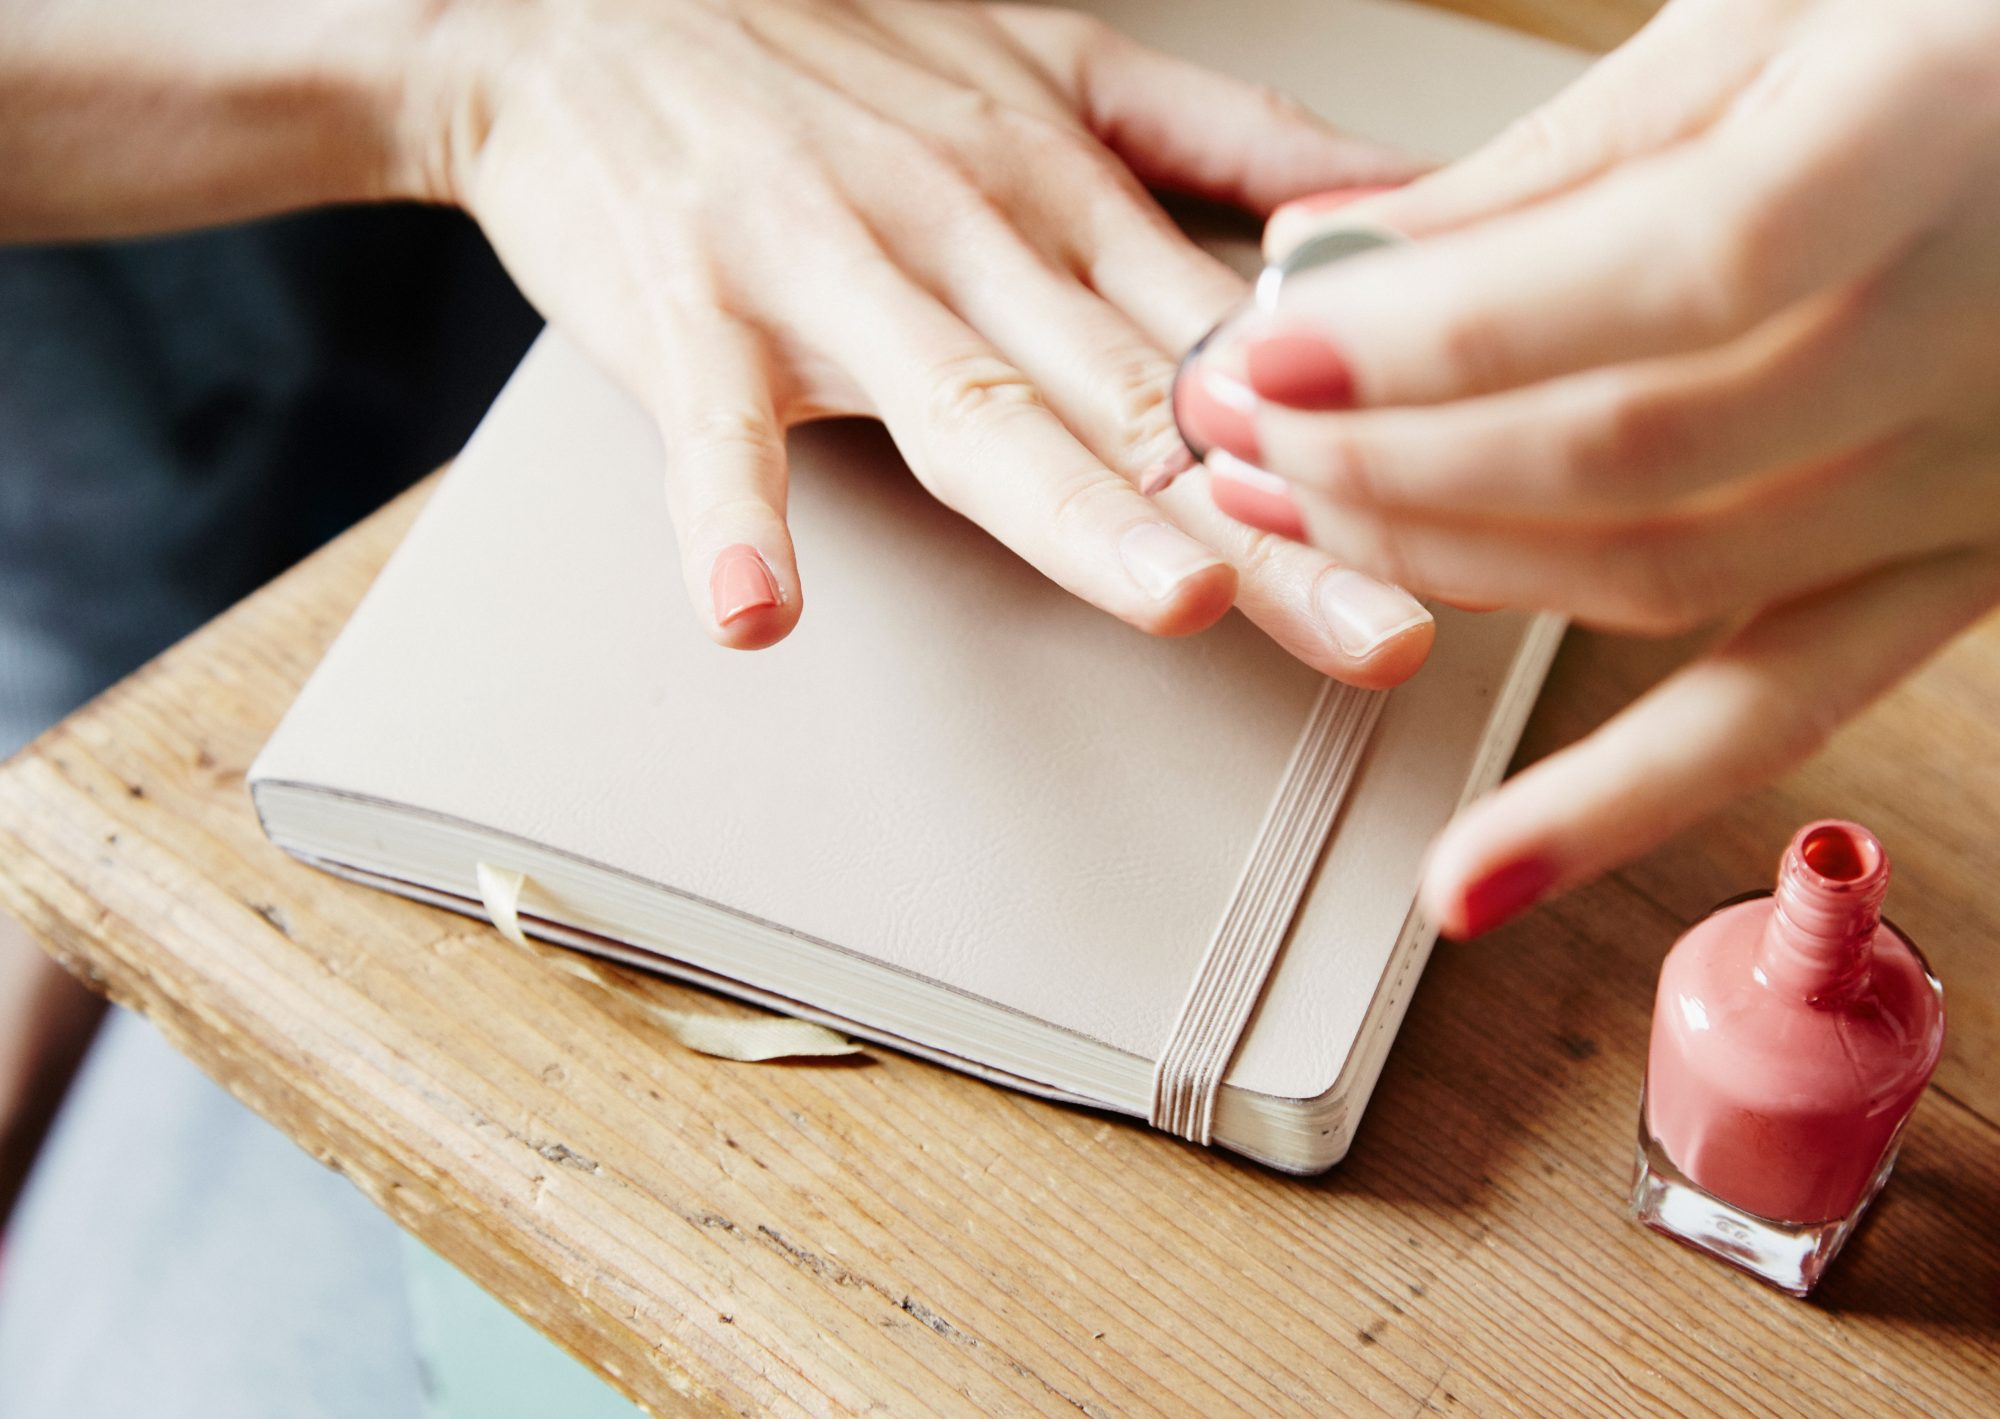 Woman Painting Nails on Top of Notebook and Desk